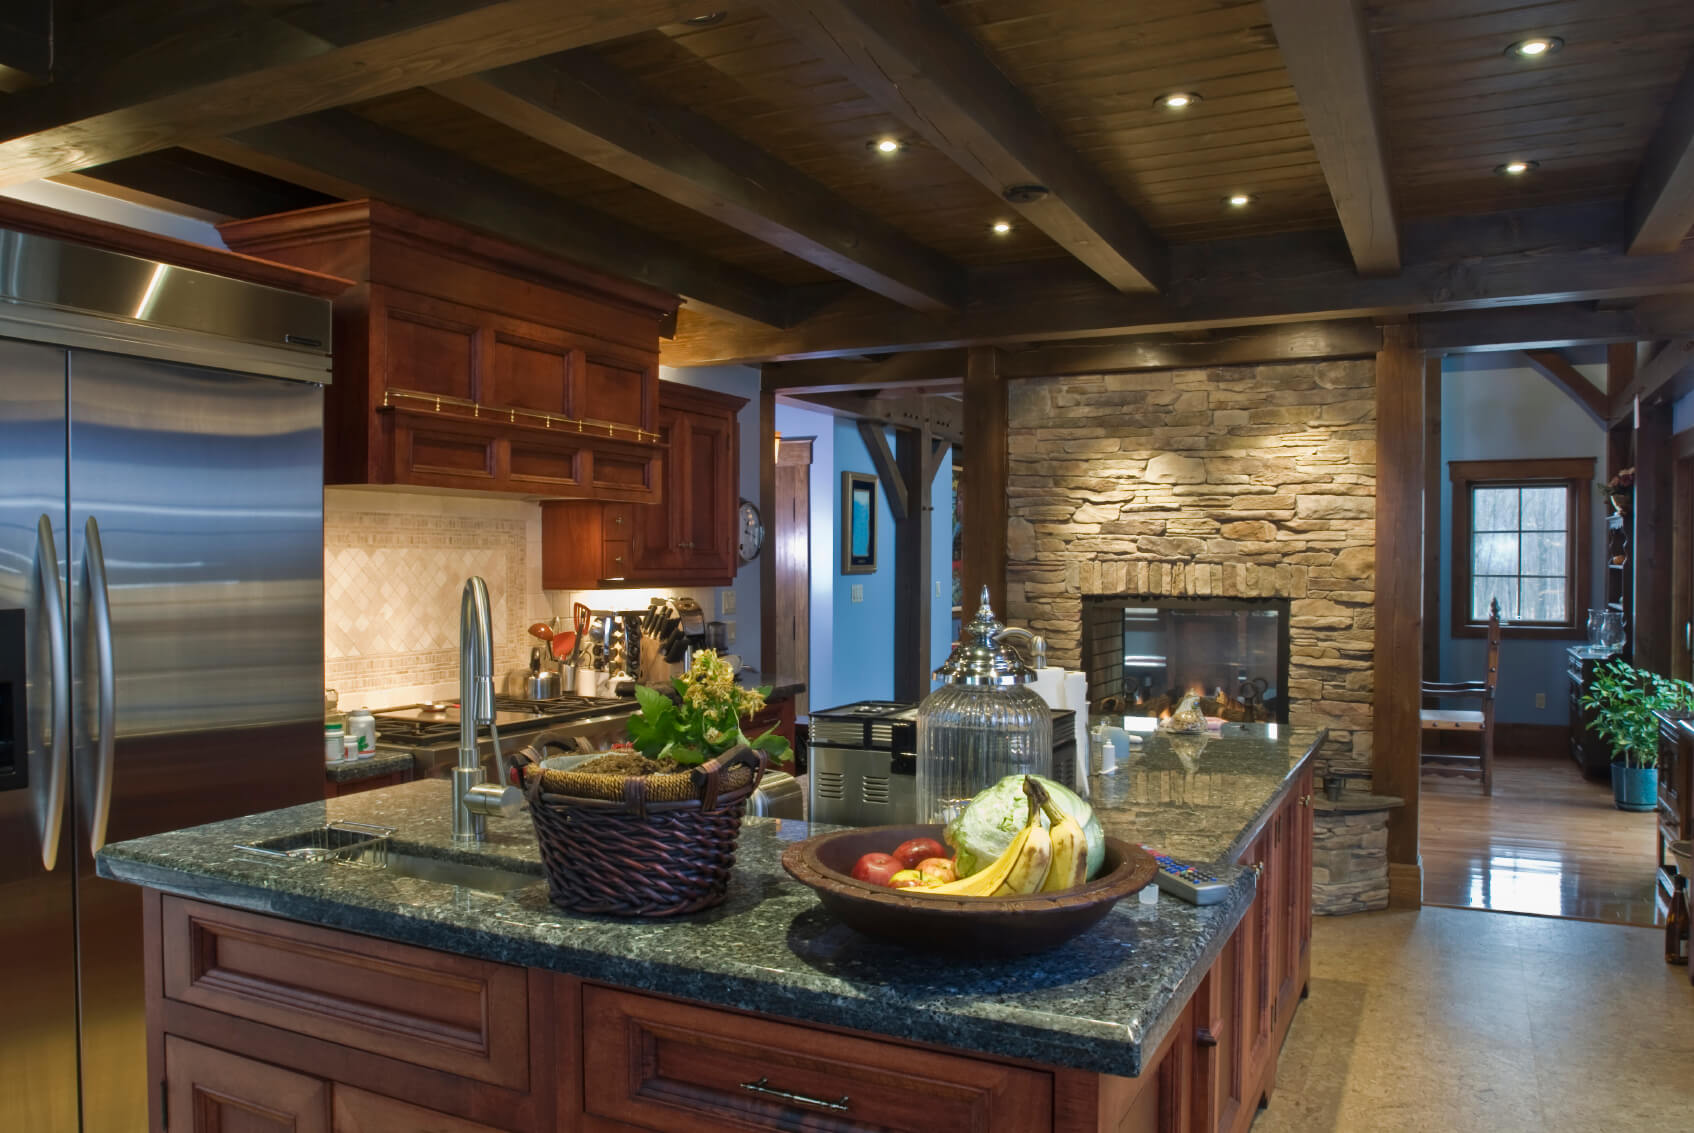 Rustic Look Kitchen Features Brick Pass Through Fireplace Under Dark Wood  Exposed Beams, With